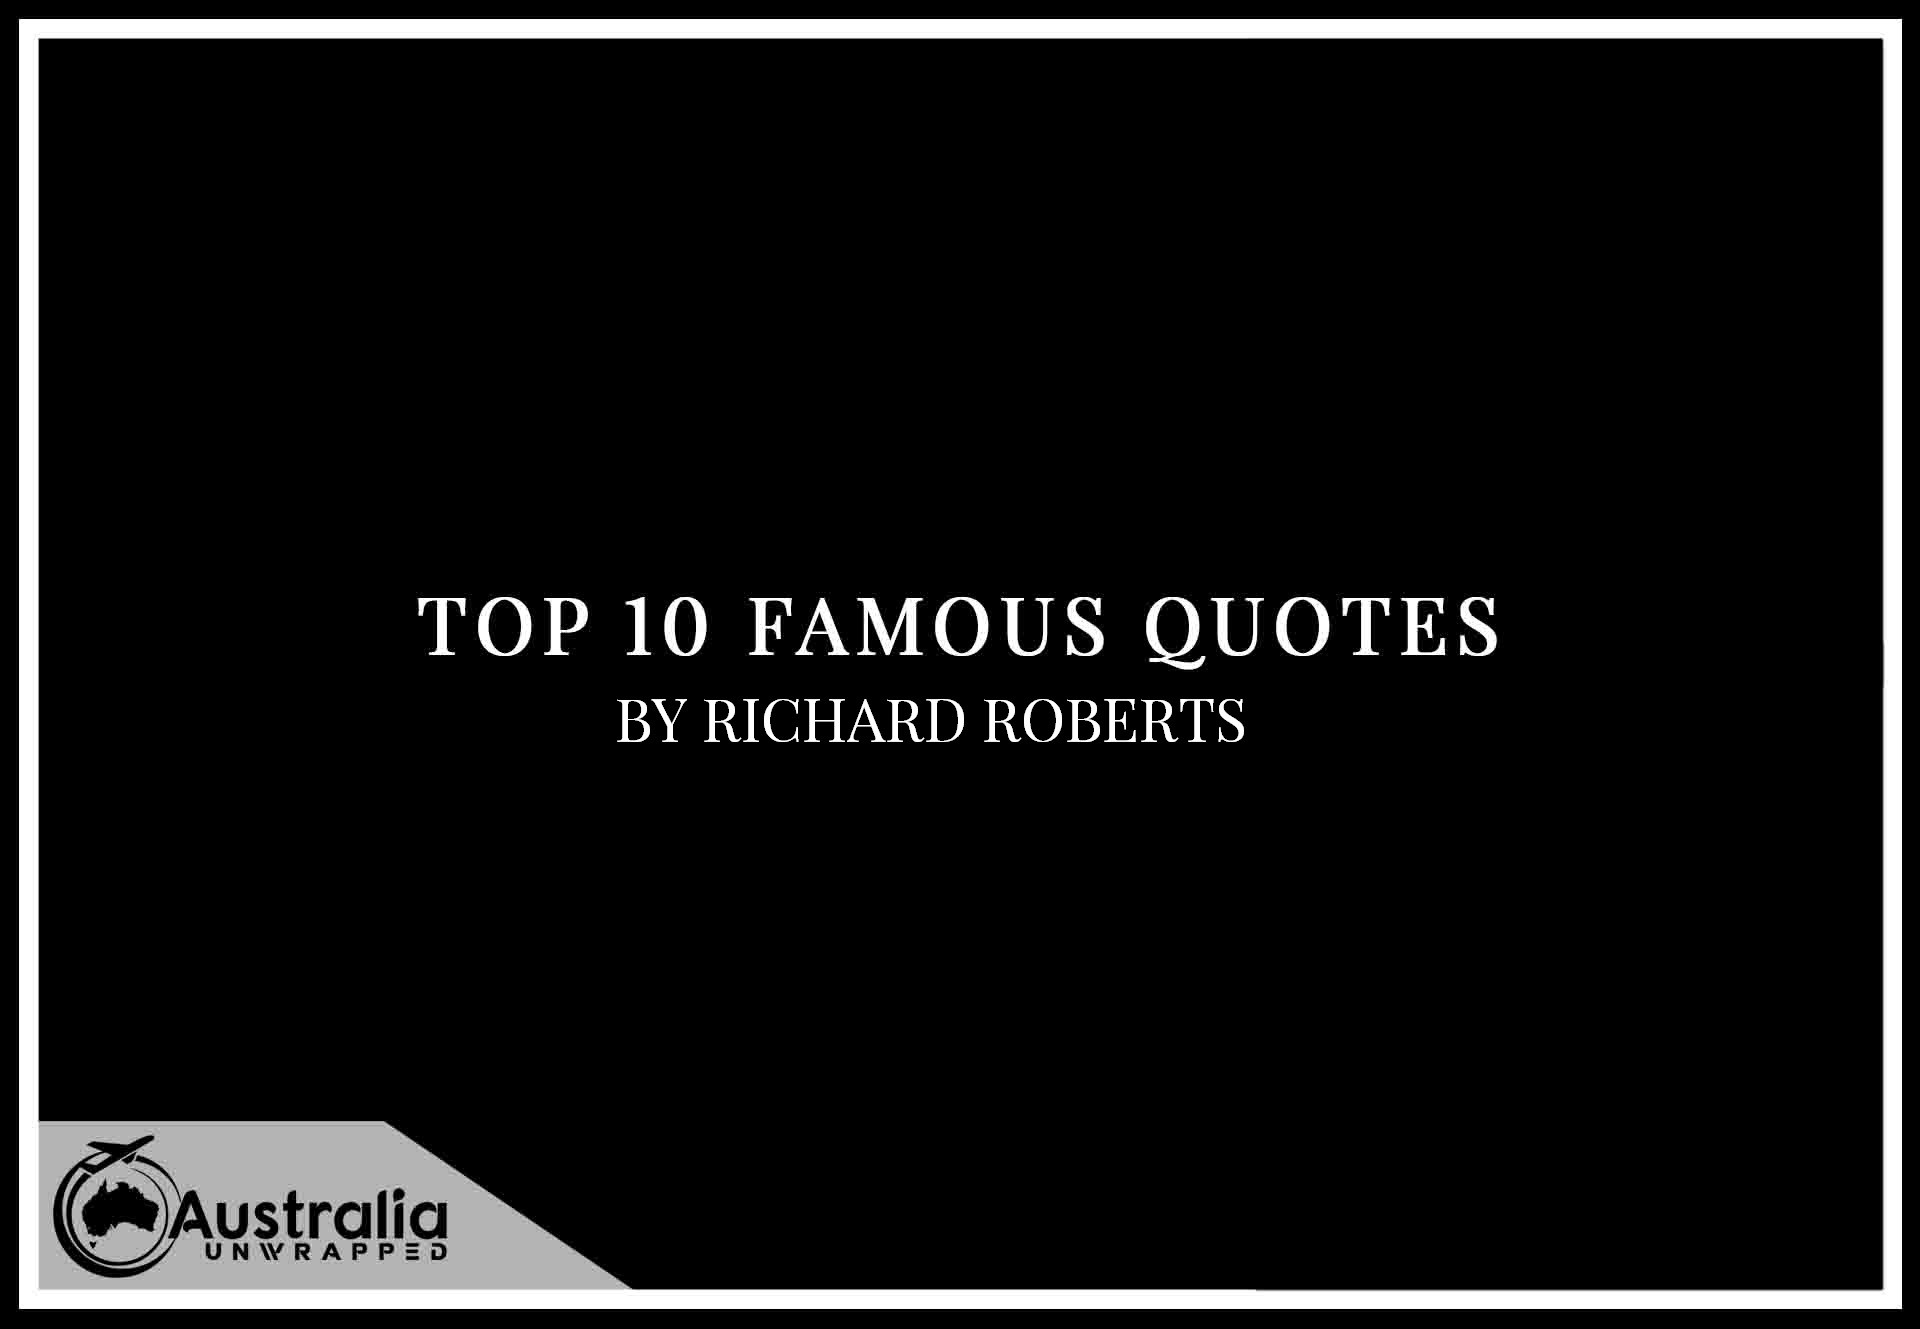 Top 10 Famous Quotes by Author Richard Roberts